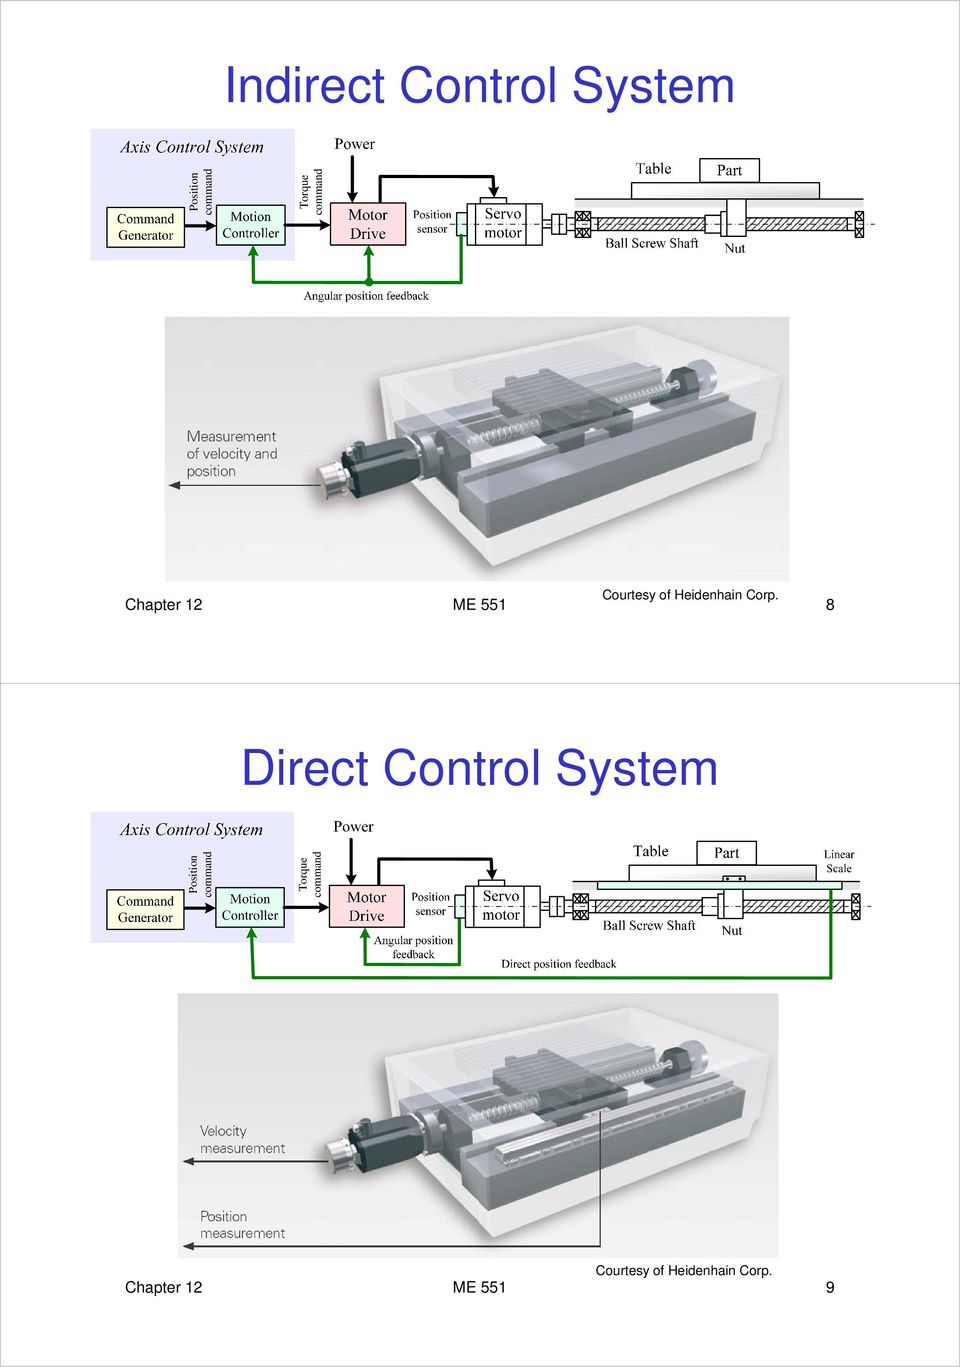 Chapter 12 ME 551 8 Direct Control System Posi comm